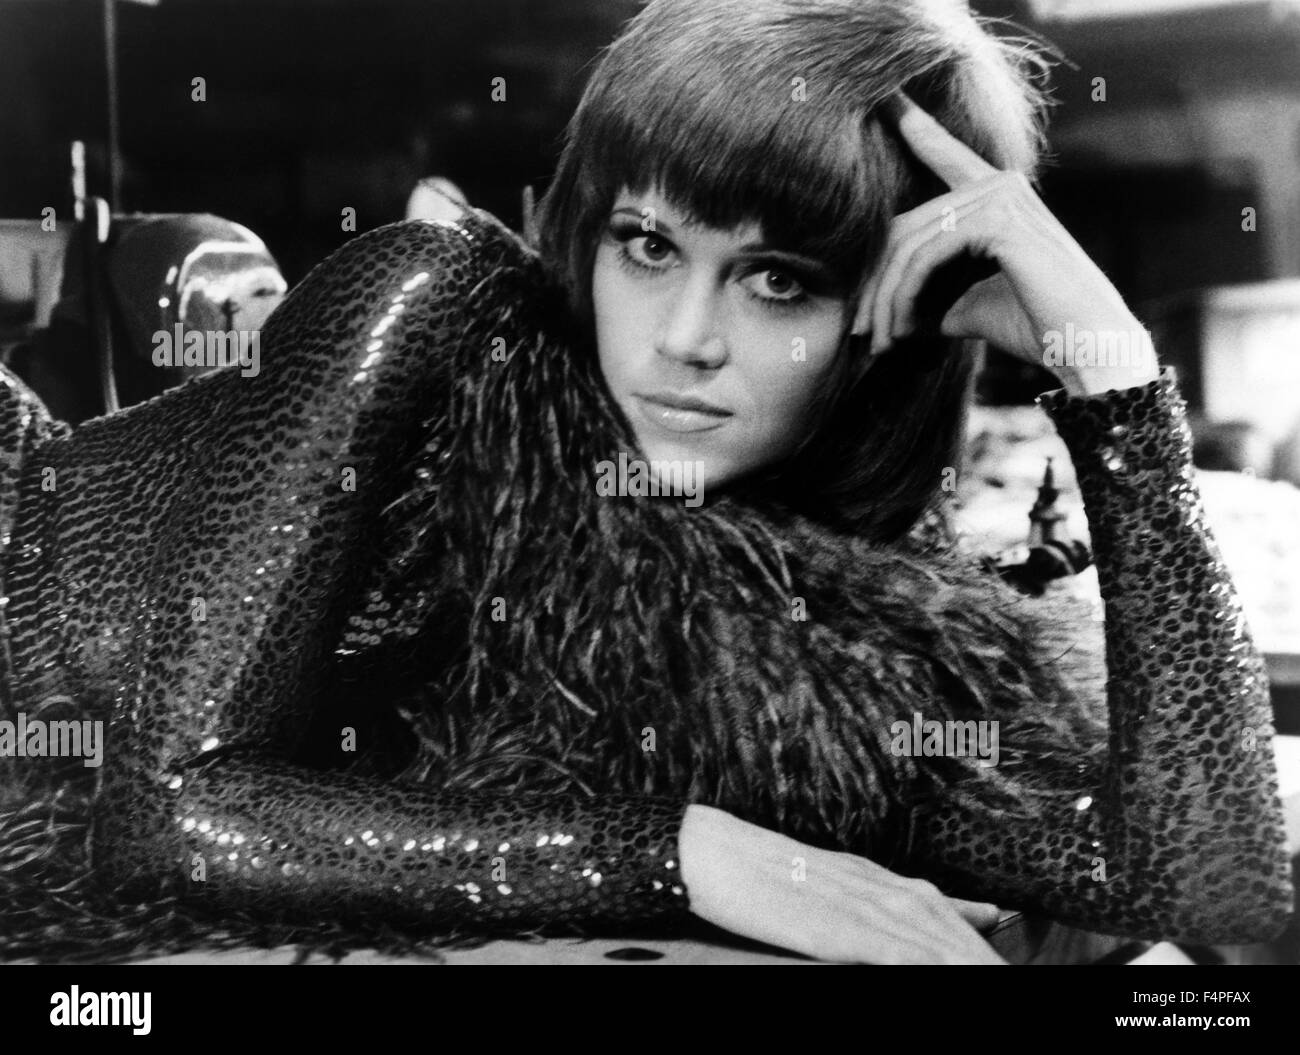 Jane Fonda / Klute / 1971 Directed By Alan J Pakula